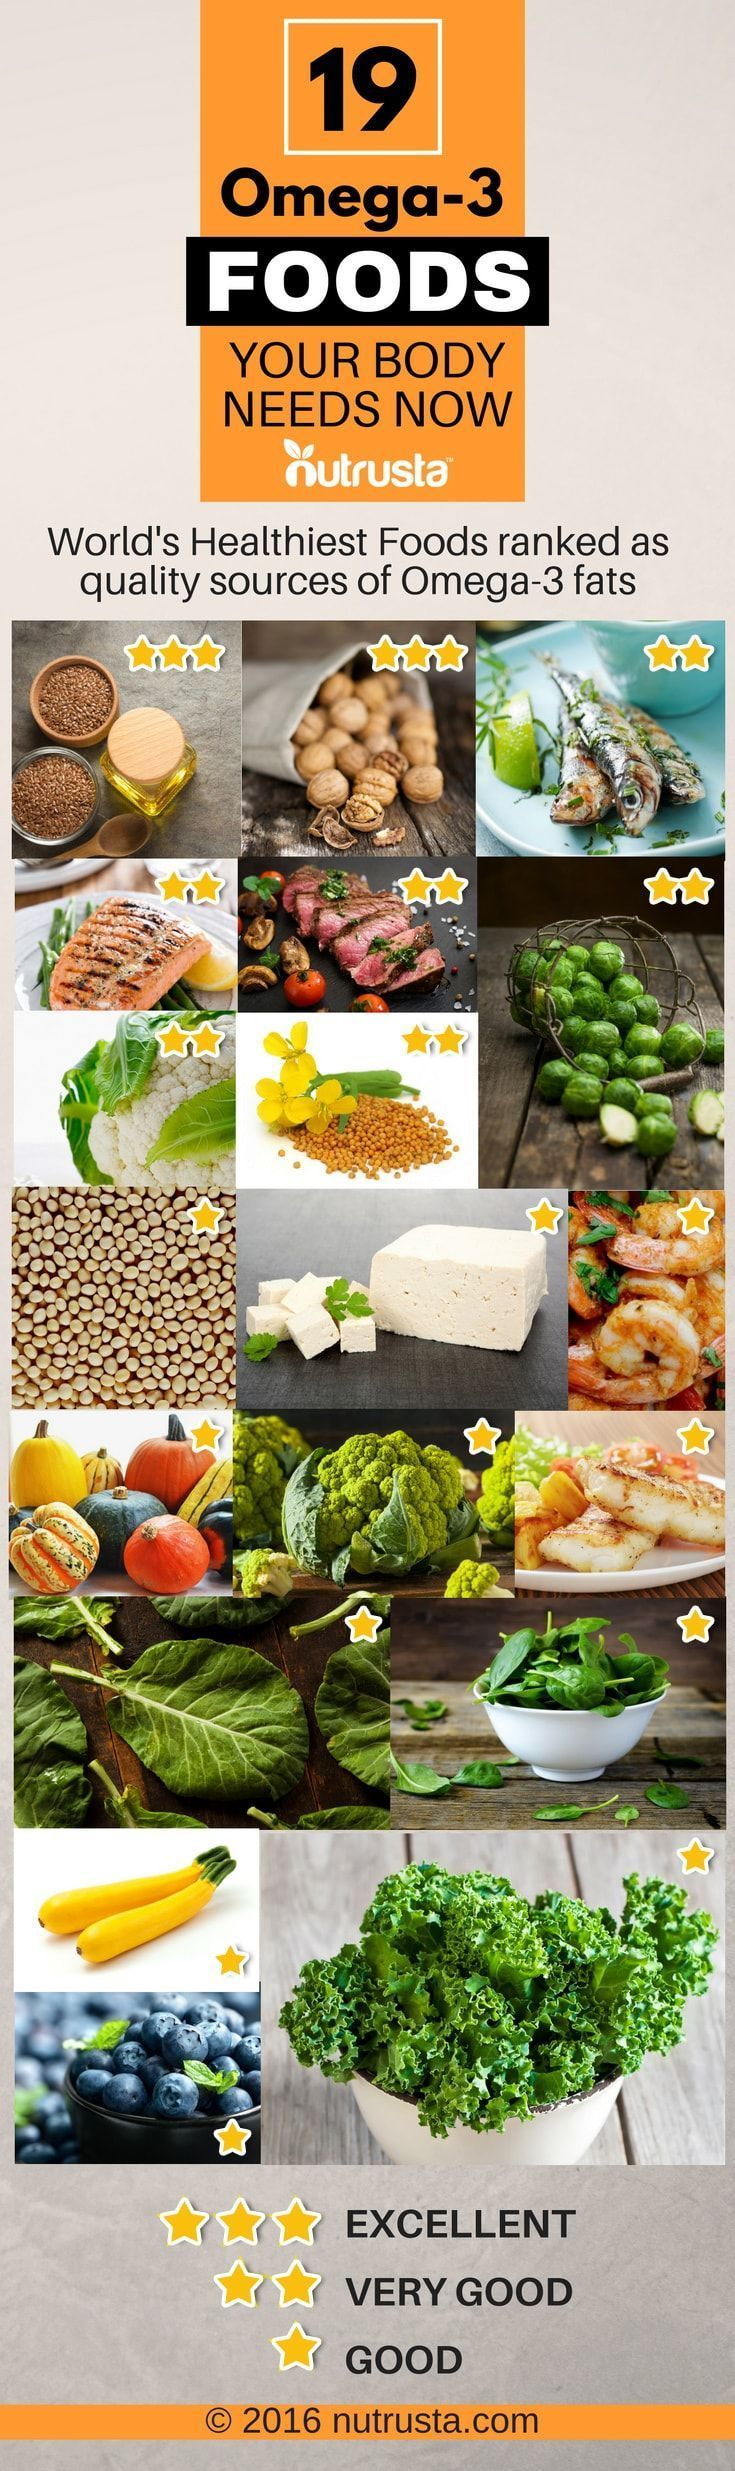 19 Omega 3 Foods For Anti Inflammation Diet Includes Fish And Chia Seeds Inflammation Diet Anti Inflammation Diet Food